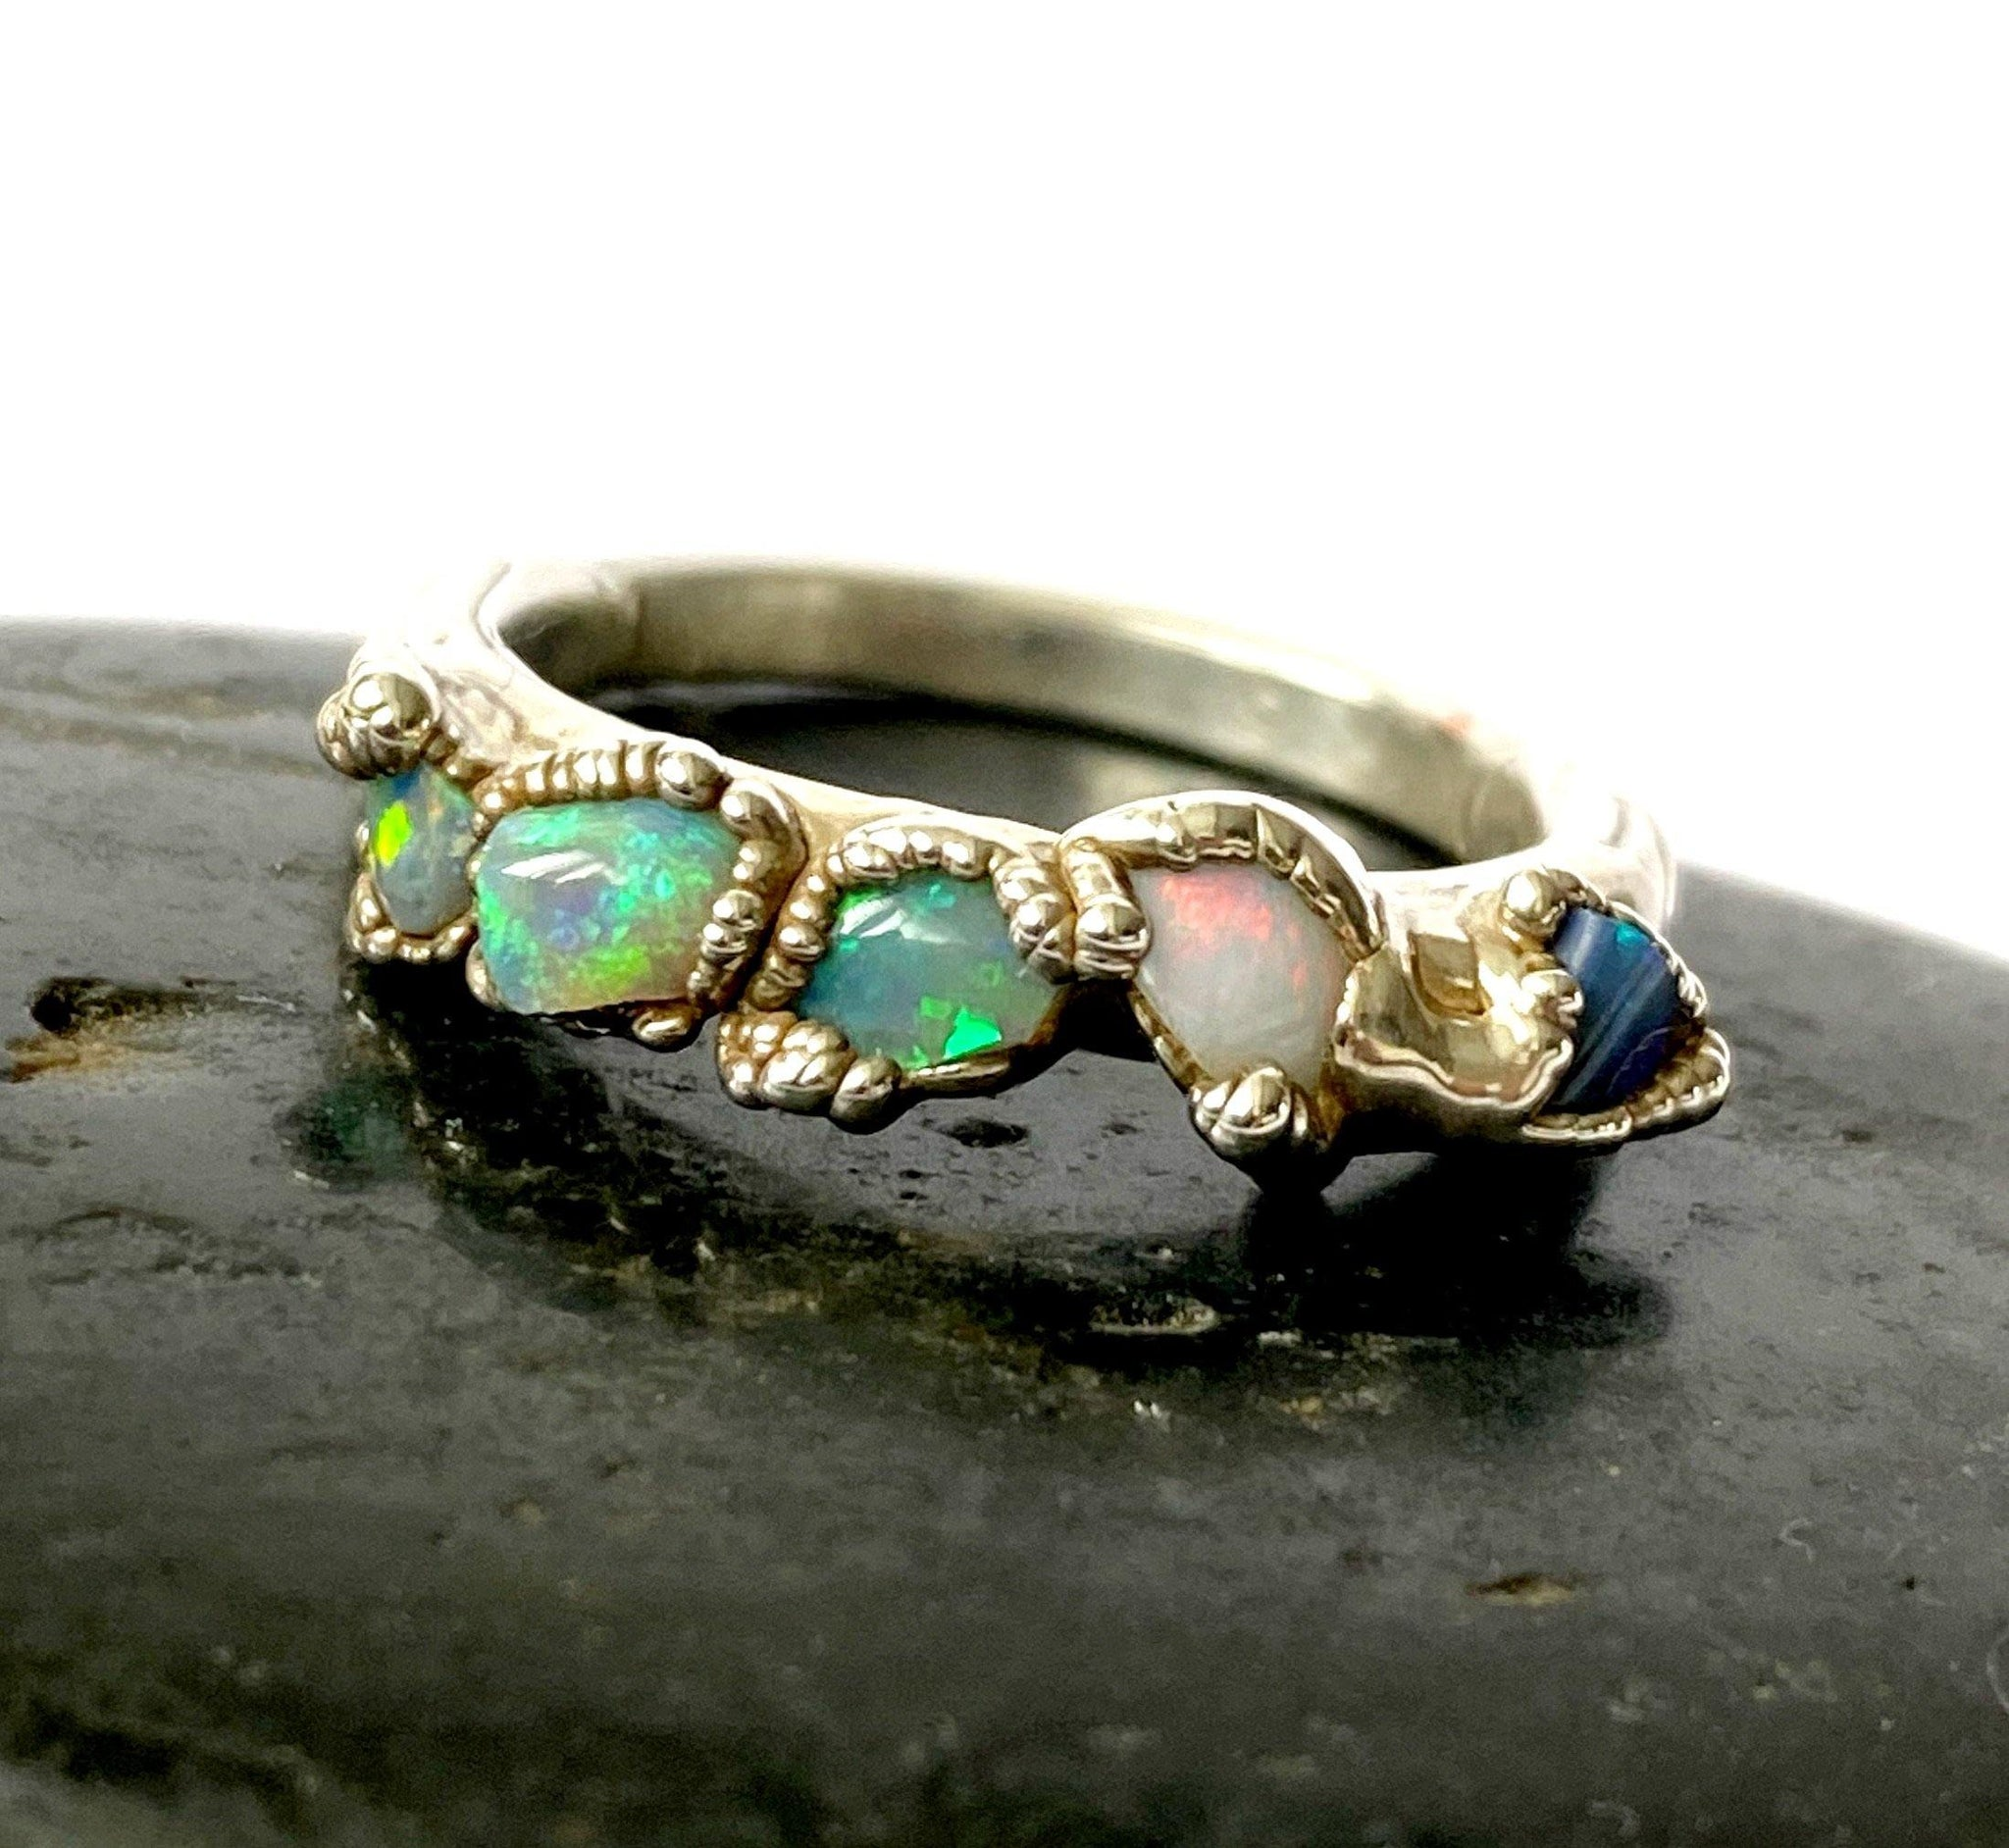 5 Opal Silver Formed Ring - Glitter and Gem Jewellery